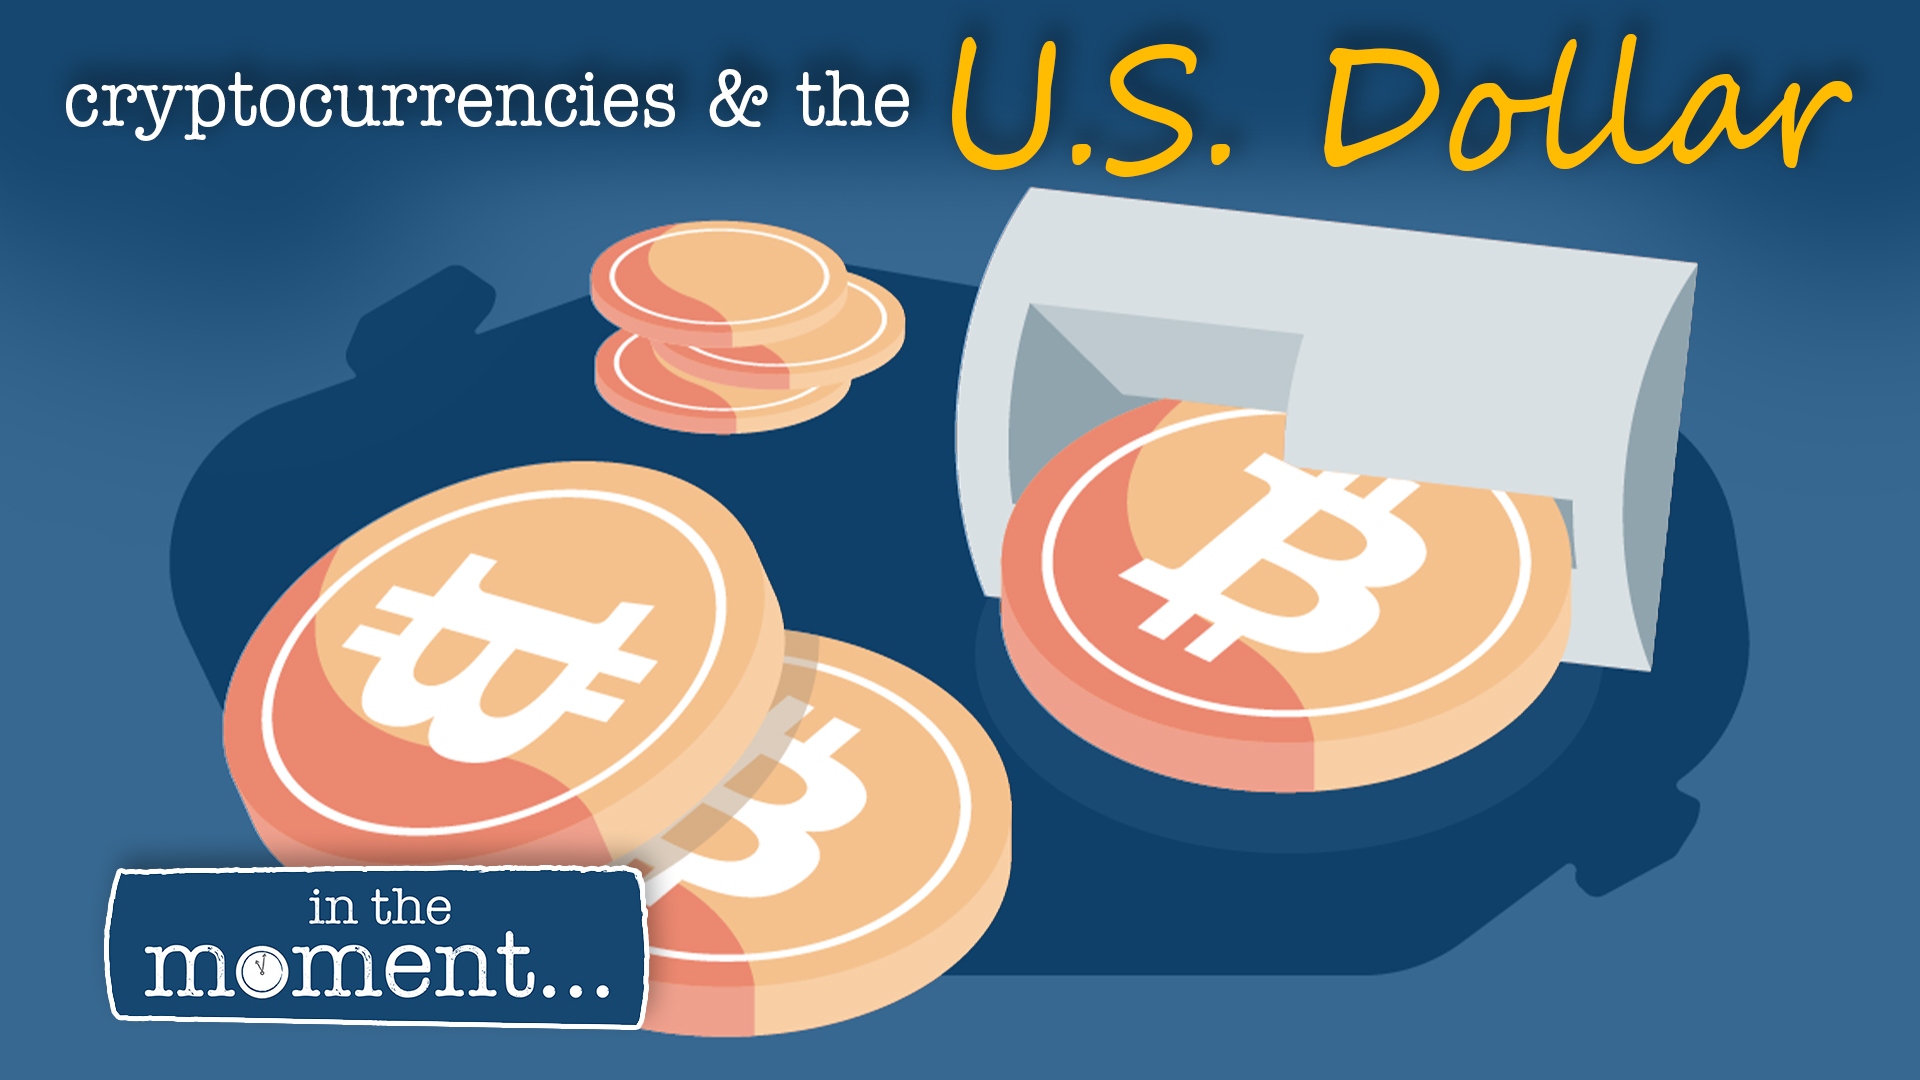 In The Moment: How Do Cryptocurrencies Impact The U.S. Dollar?